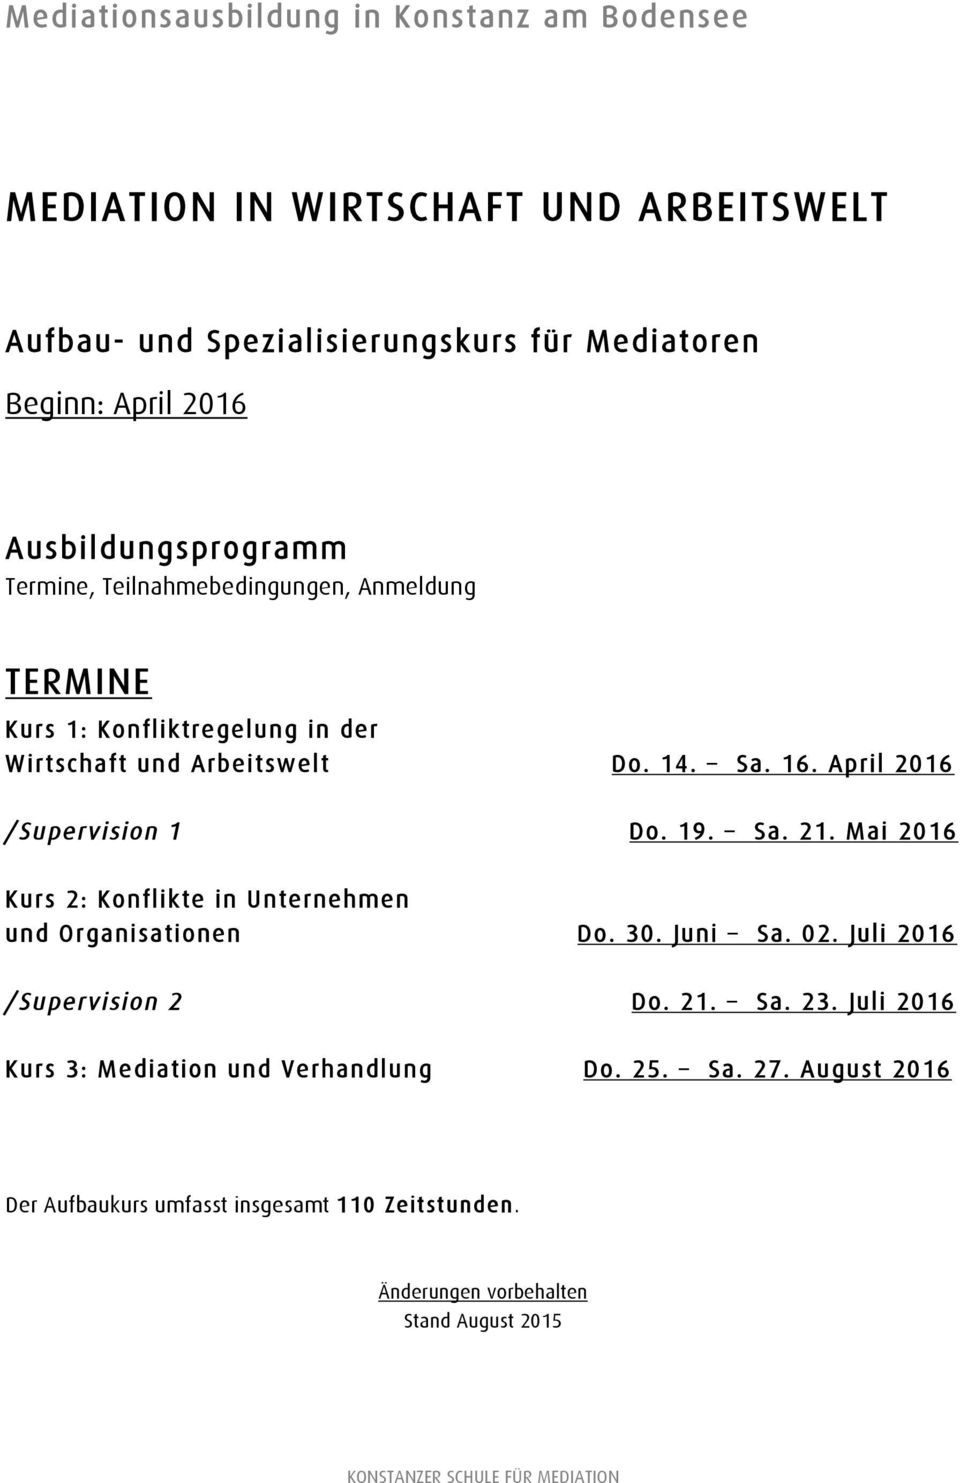 April 2016 /Supervision 1 Do. 19. Sa. 21. Mai 2016 Kurs 2: Konflikte in Unternehmen und Organisationen Do. 30. Juni Sa. 02. Juli 2016 /Supervision 2 Do. 21. Sa. 23.